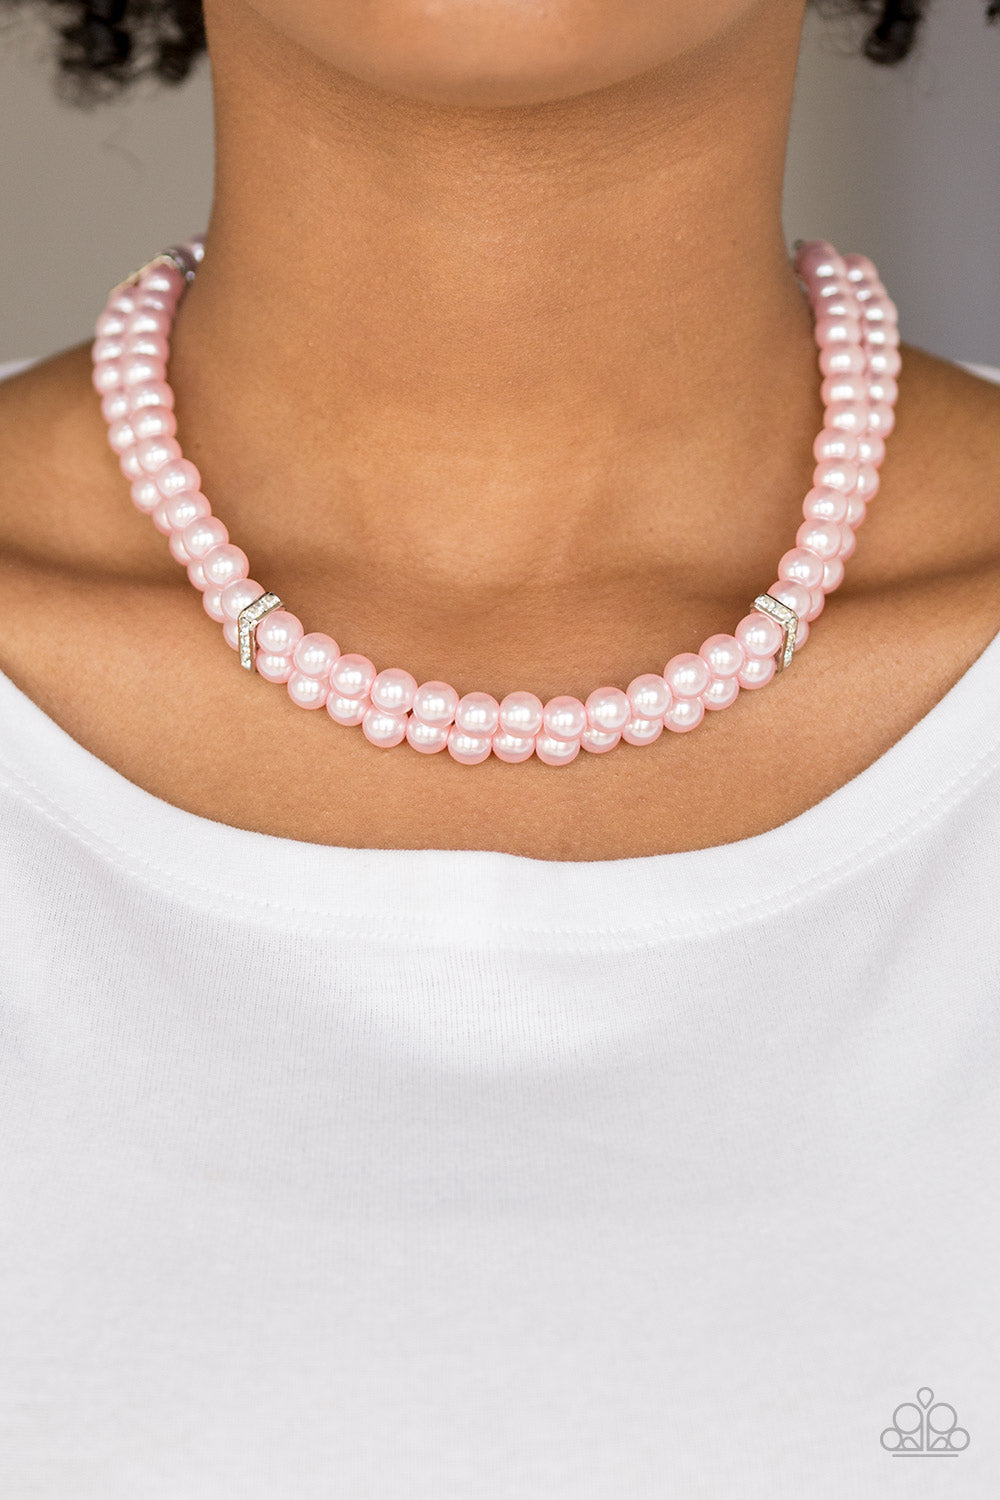 Paparazzi - Put On Your Party Dress - Pink Necklace Set - Classy Jewels by Linda